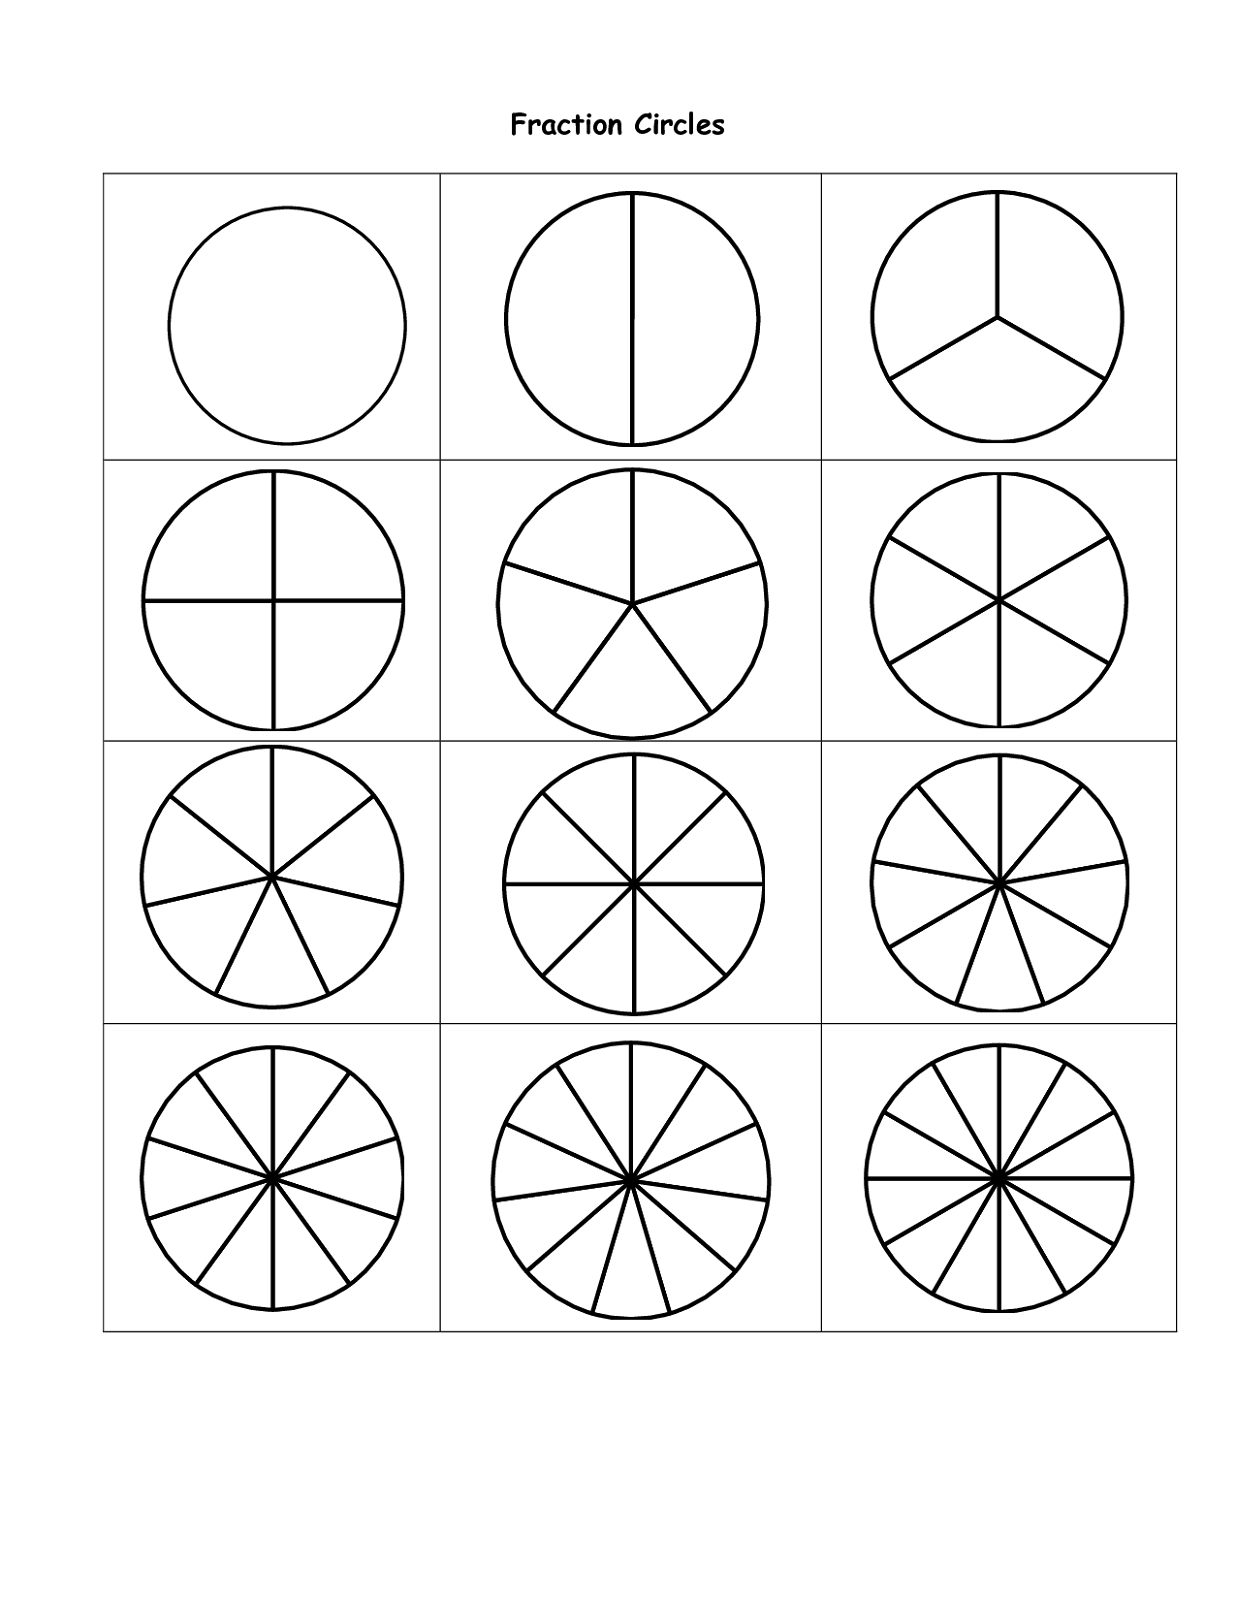 Summary -> Free Printable Fraction Circles File Folder Fun - Free Printable Blank Fraction Circles